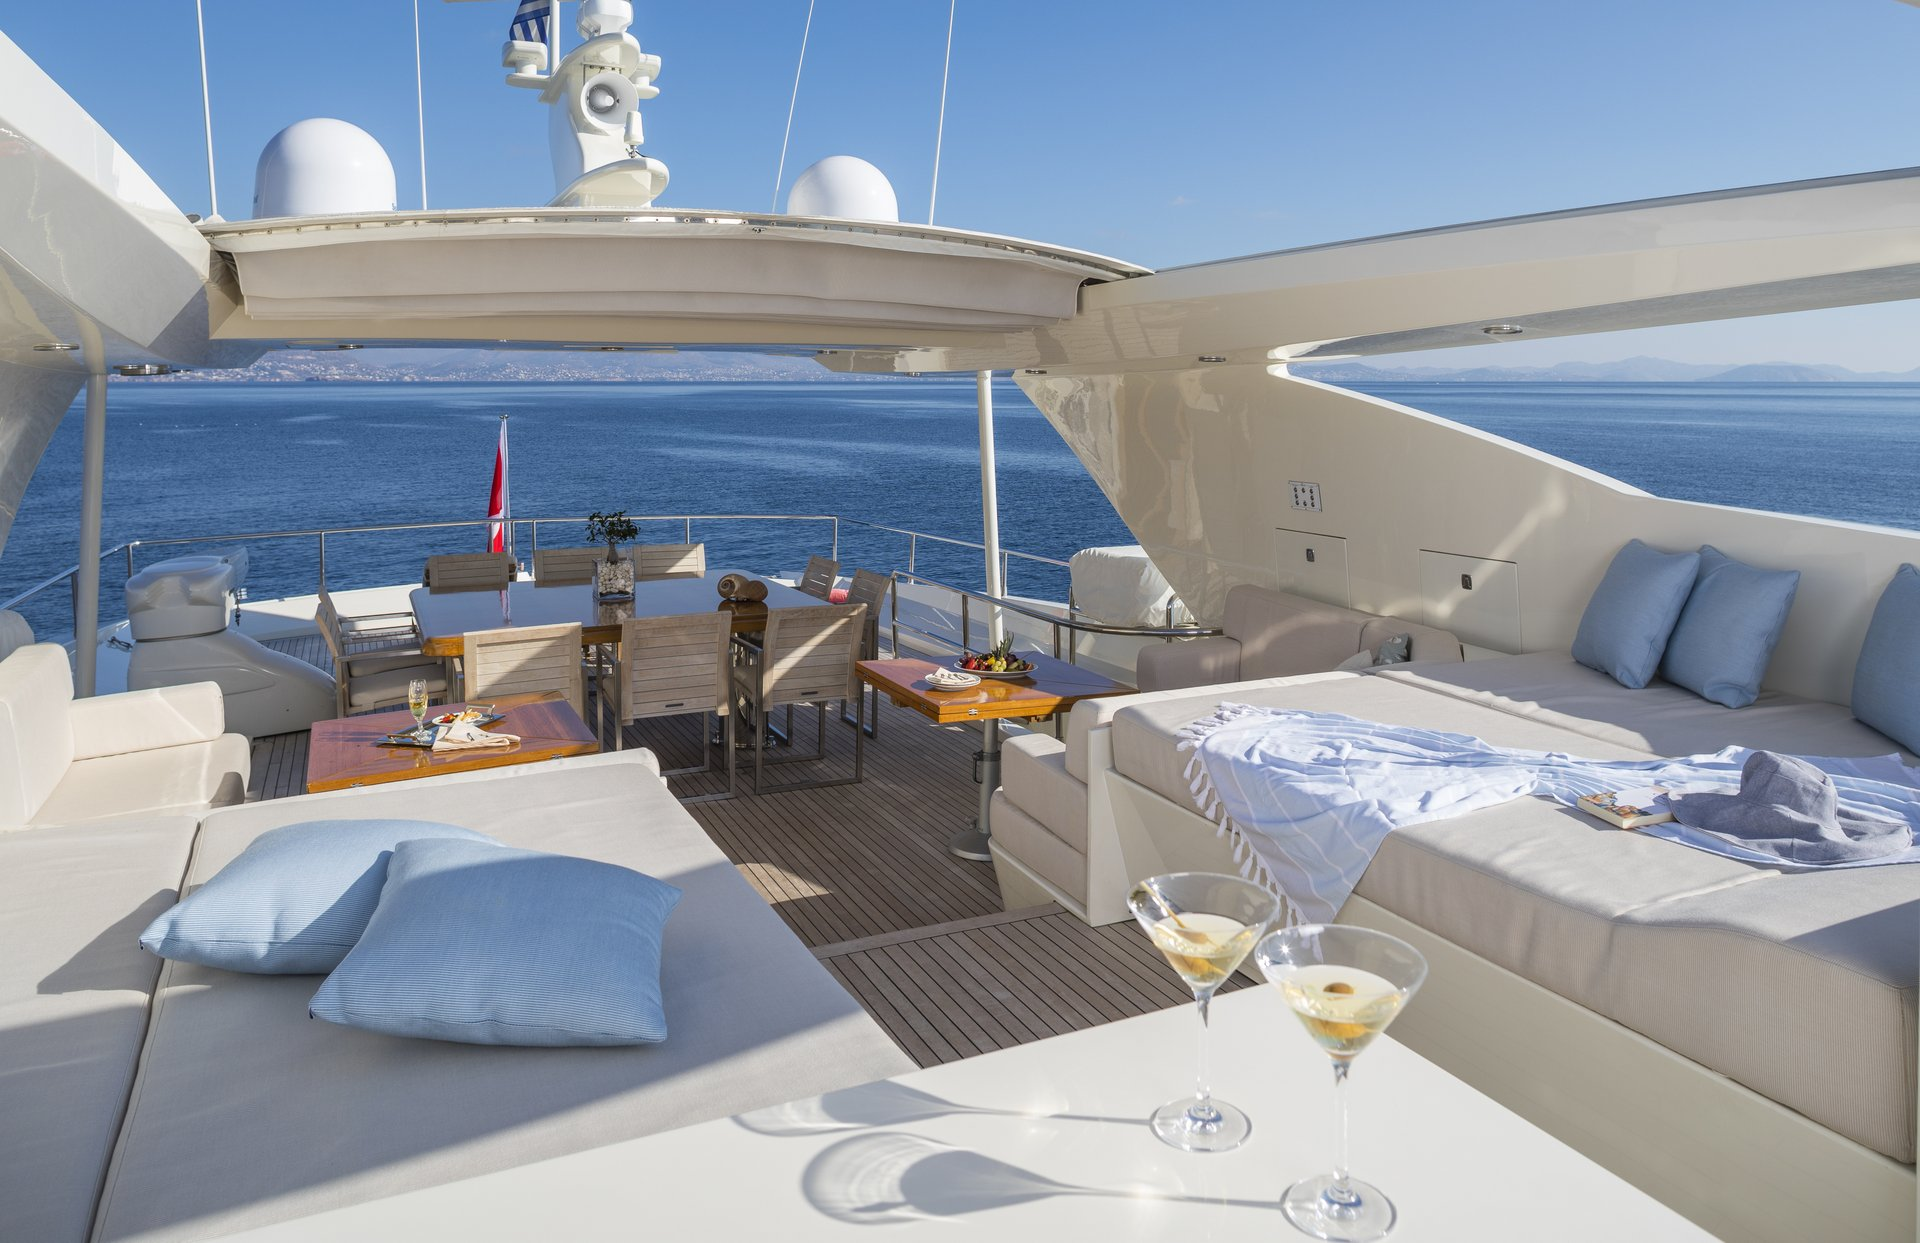 M/Y RINI V yacht for charter deck